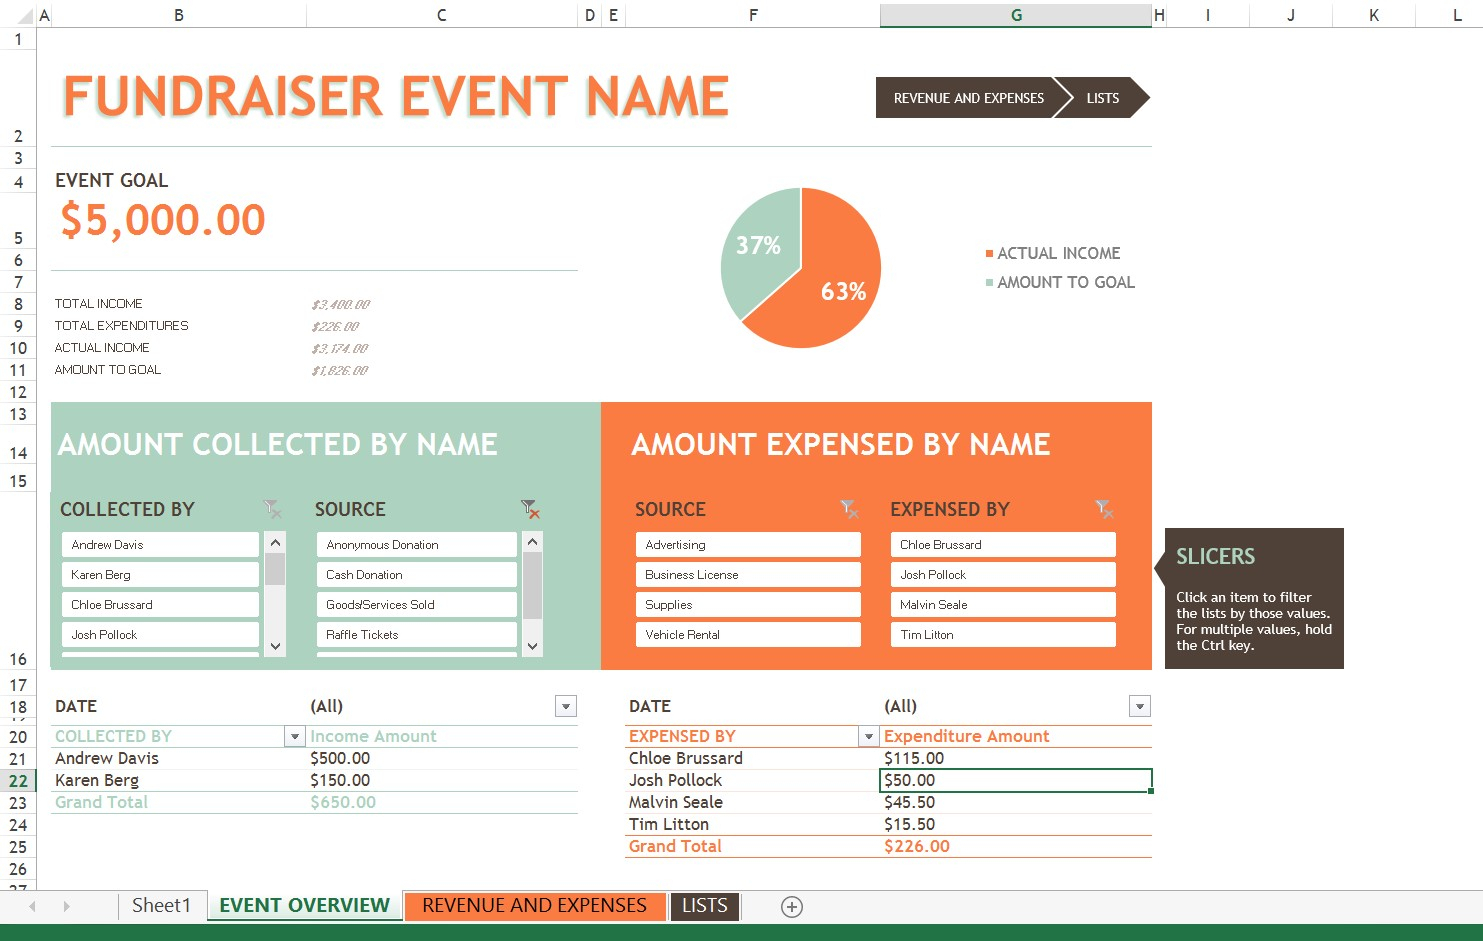 Event Budget Spreadsheet Inside Fundraiser Tracking Spreadsheet Fundraising Event Budget Template